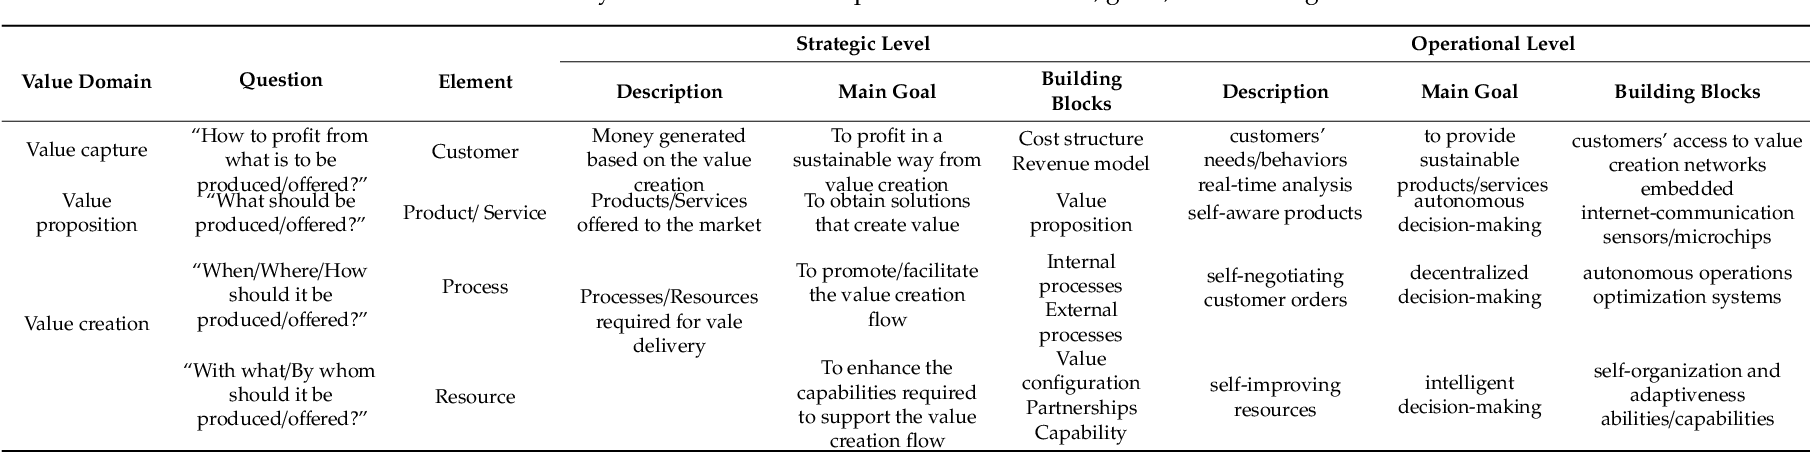 Table 2 from A Comprehensive Framework for the Analysis of